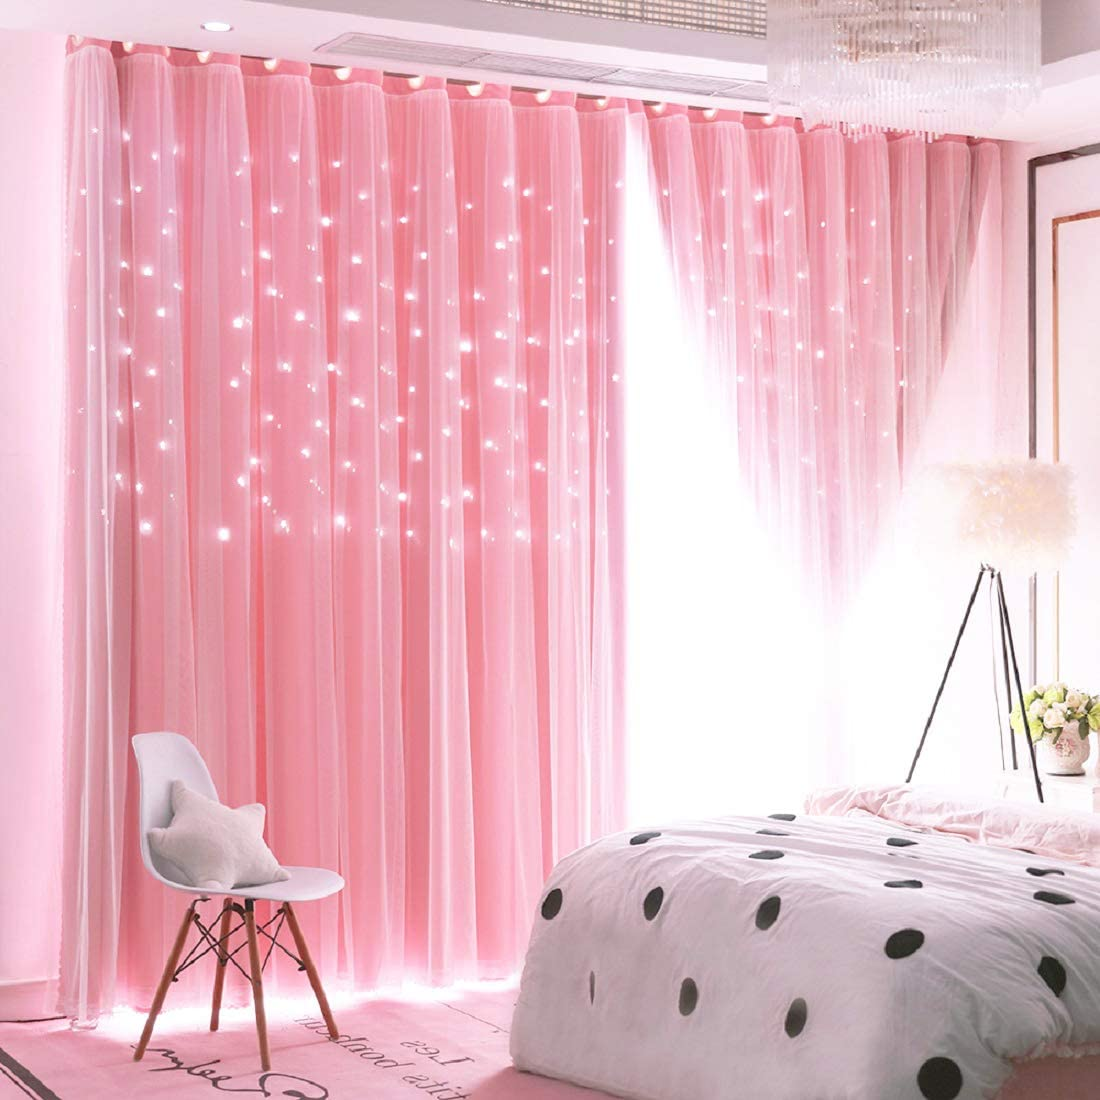 UNISTAR 2 Panels Stars Blackout Curtains for Bedroom Girls Kids Baby Window Curtain Double Layer Star Cut Out Aesthetic Living Room Decor Wall Home Decorations Curtain,W52 x L84 Inches,Pink